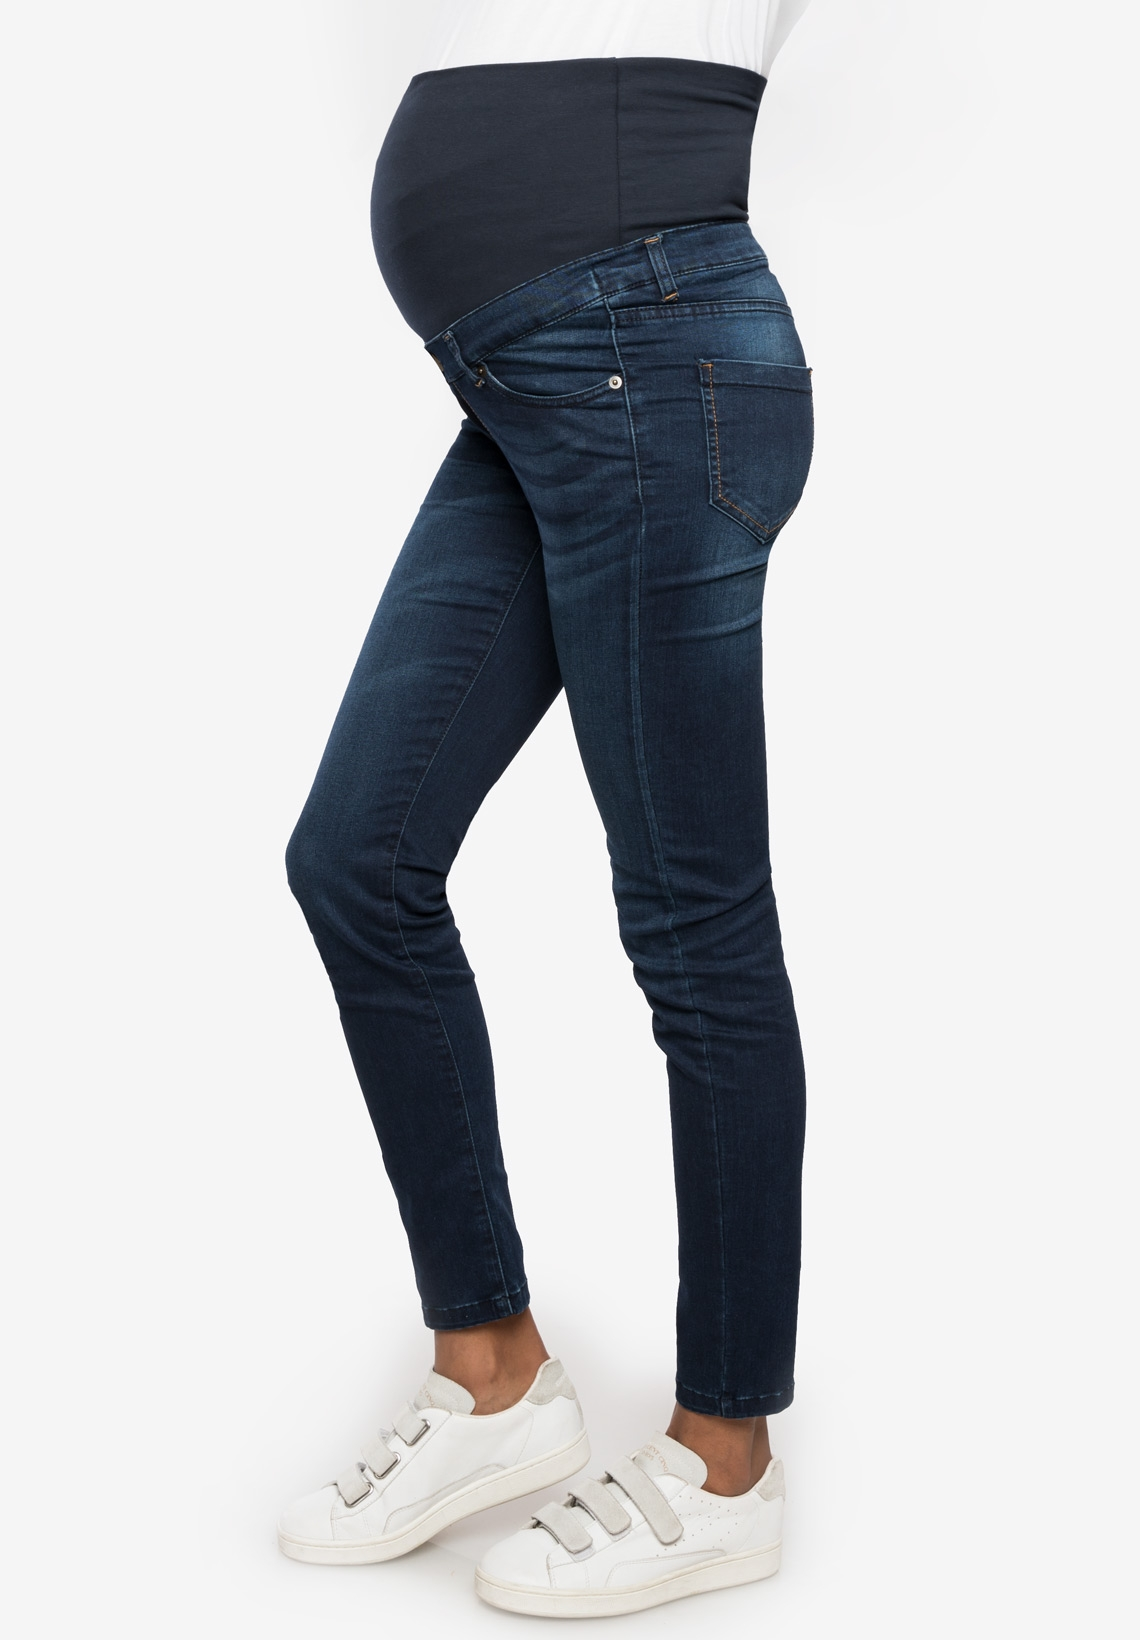 online retailer new products new high quality CLINT DELUXE - Jean grossesse slim bandeau haut